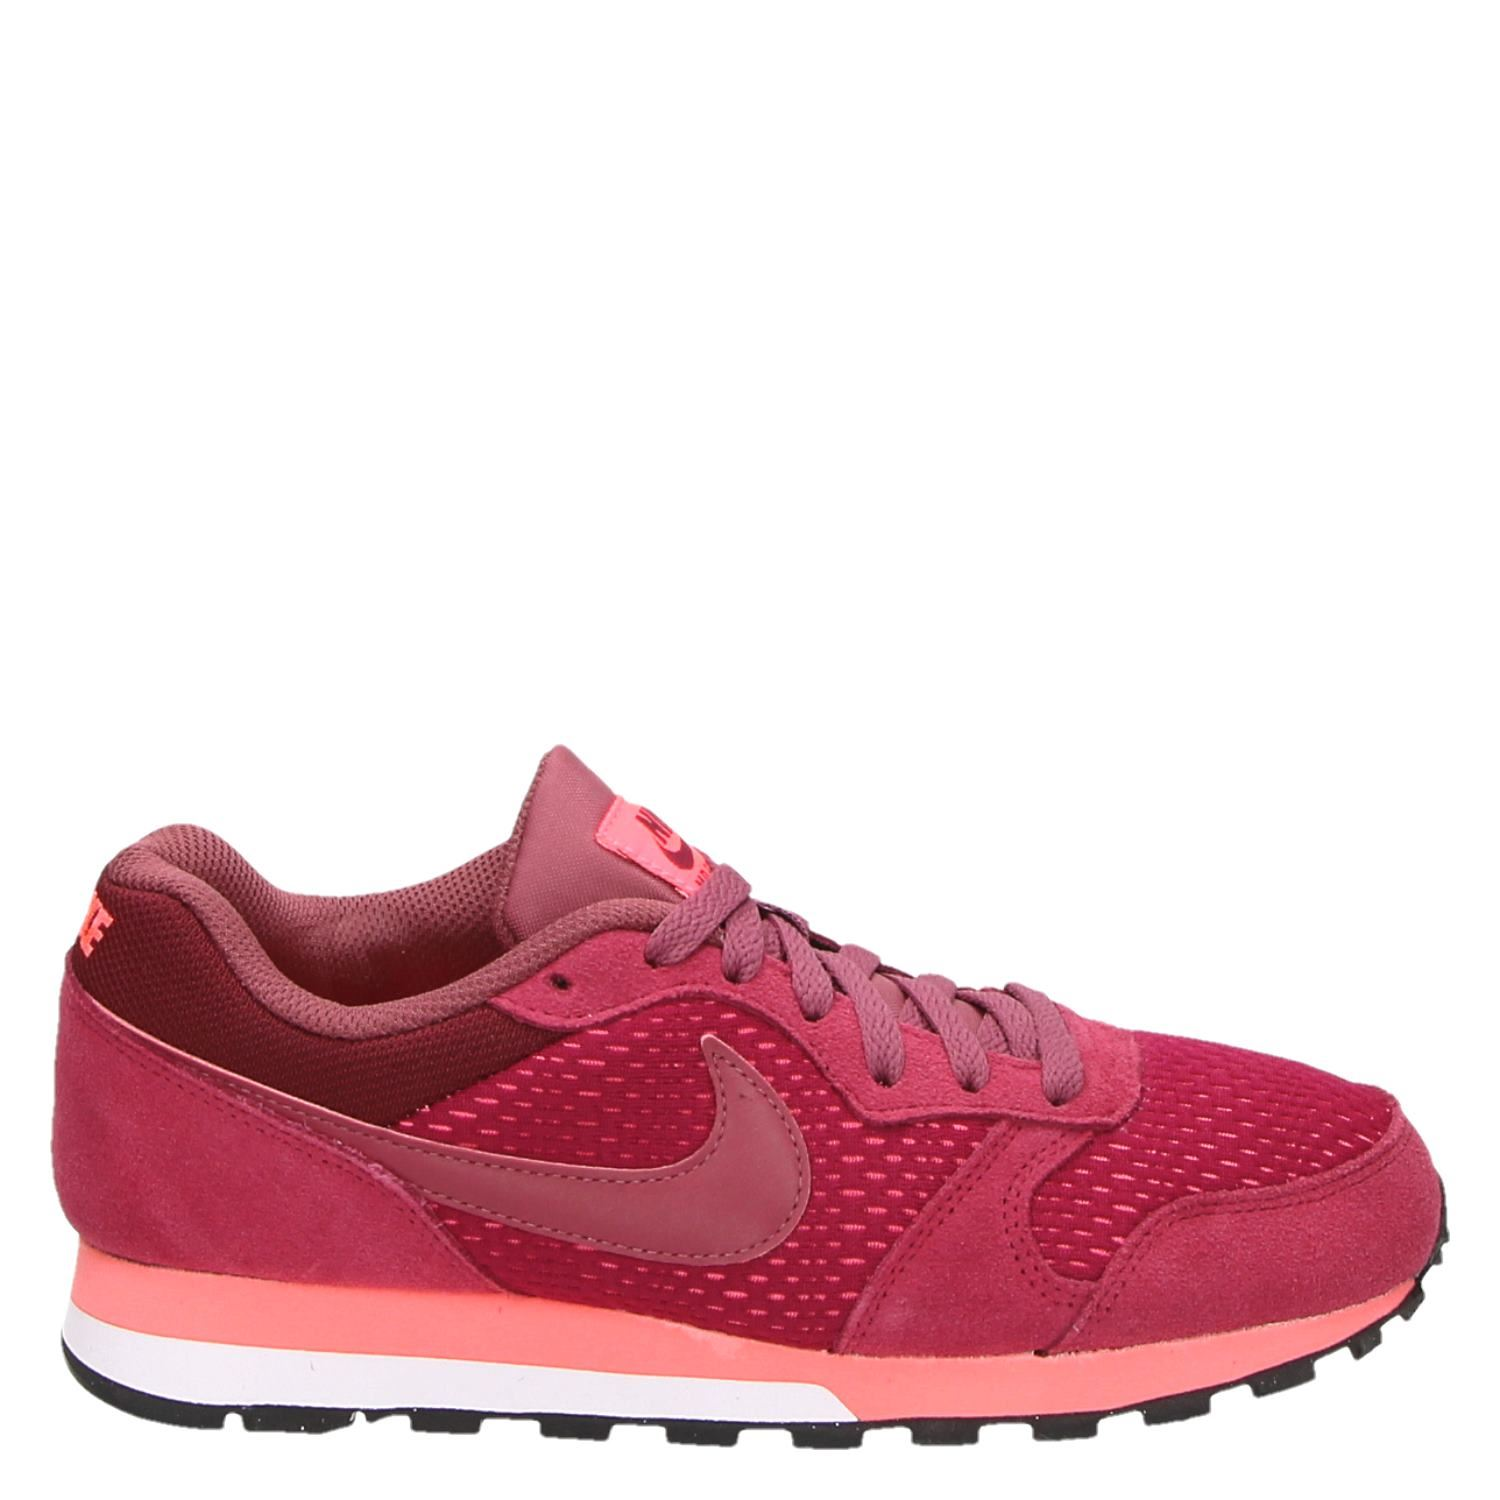 Nike Md Runner 2 Chaussures De Sport Lage Rood ydnIF